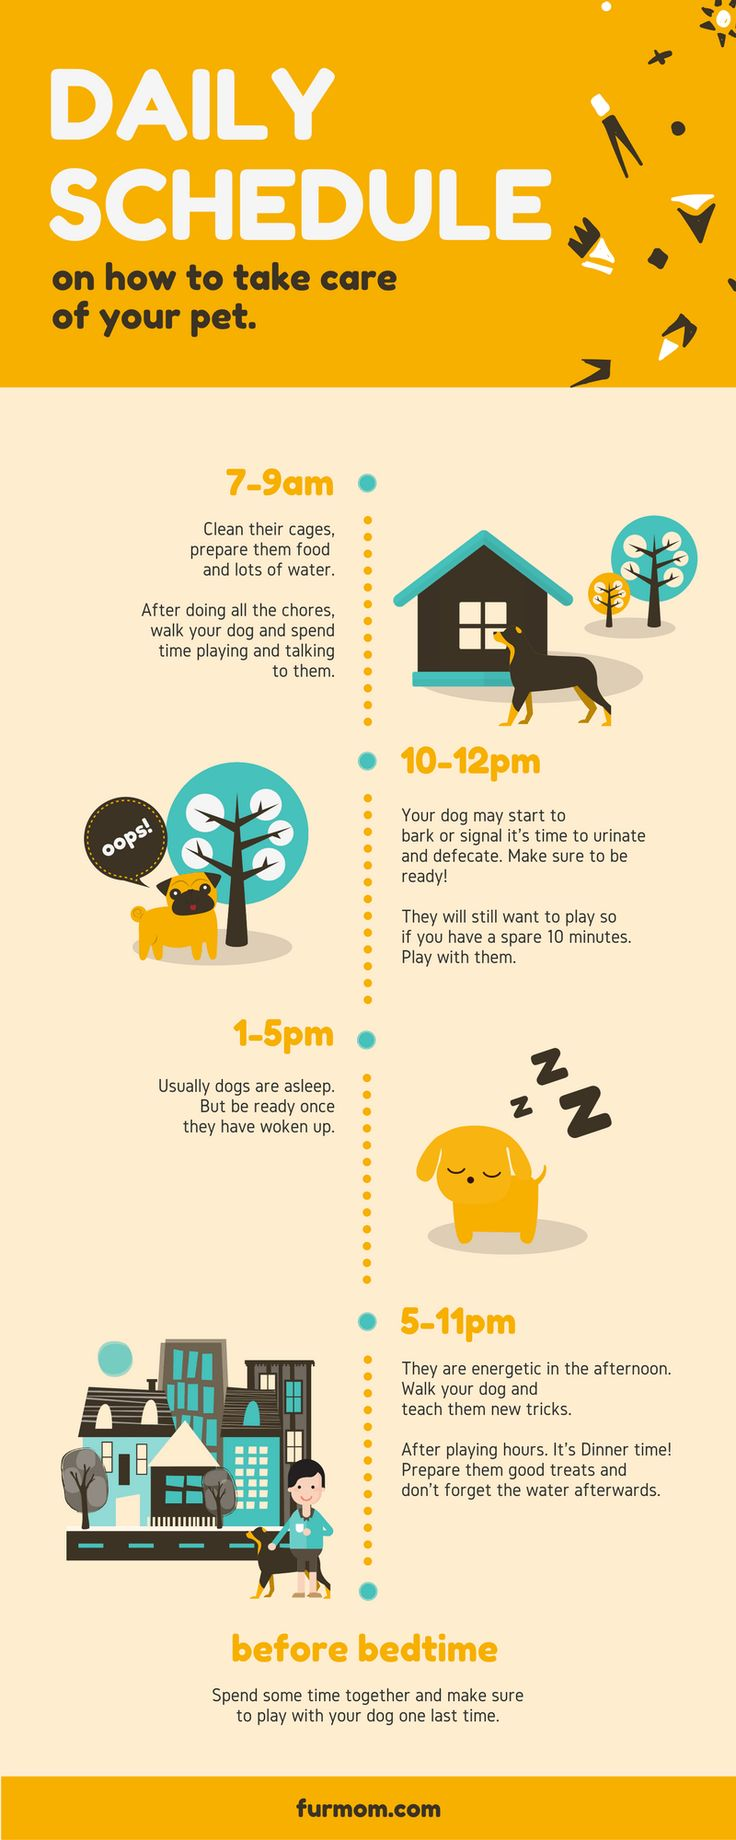 Best Daily Routine For Dogs